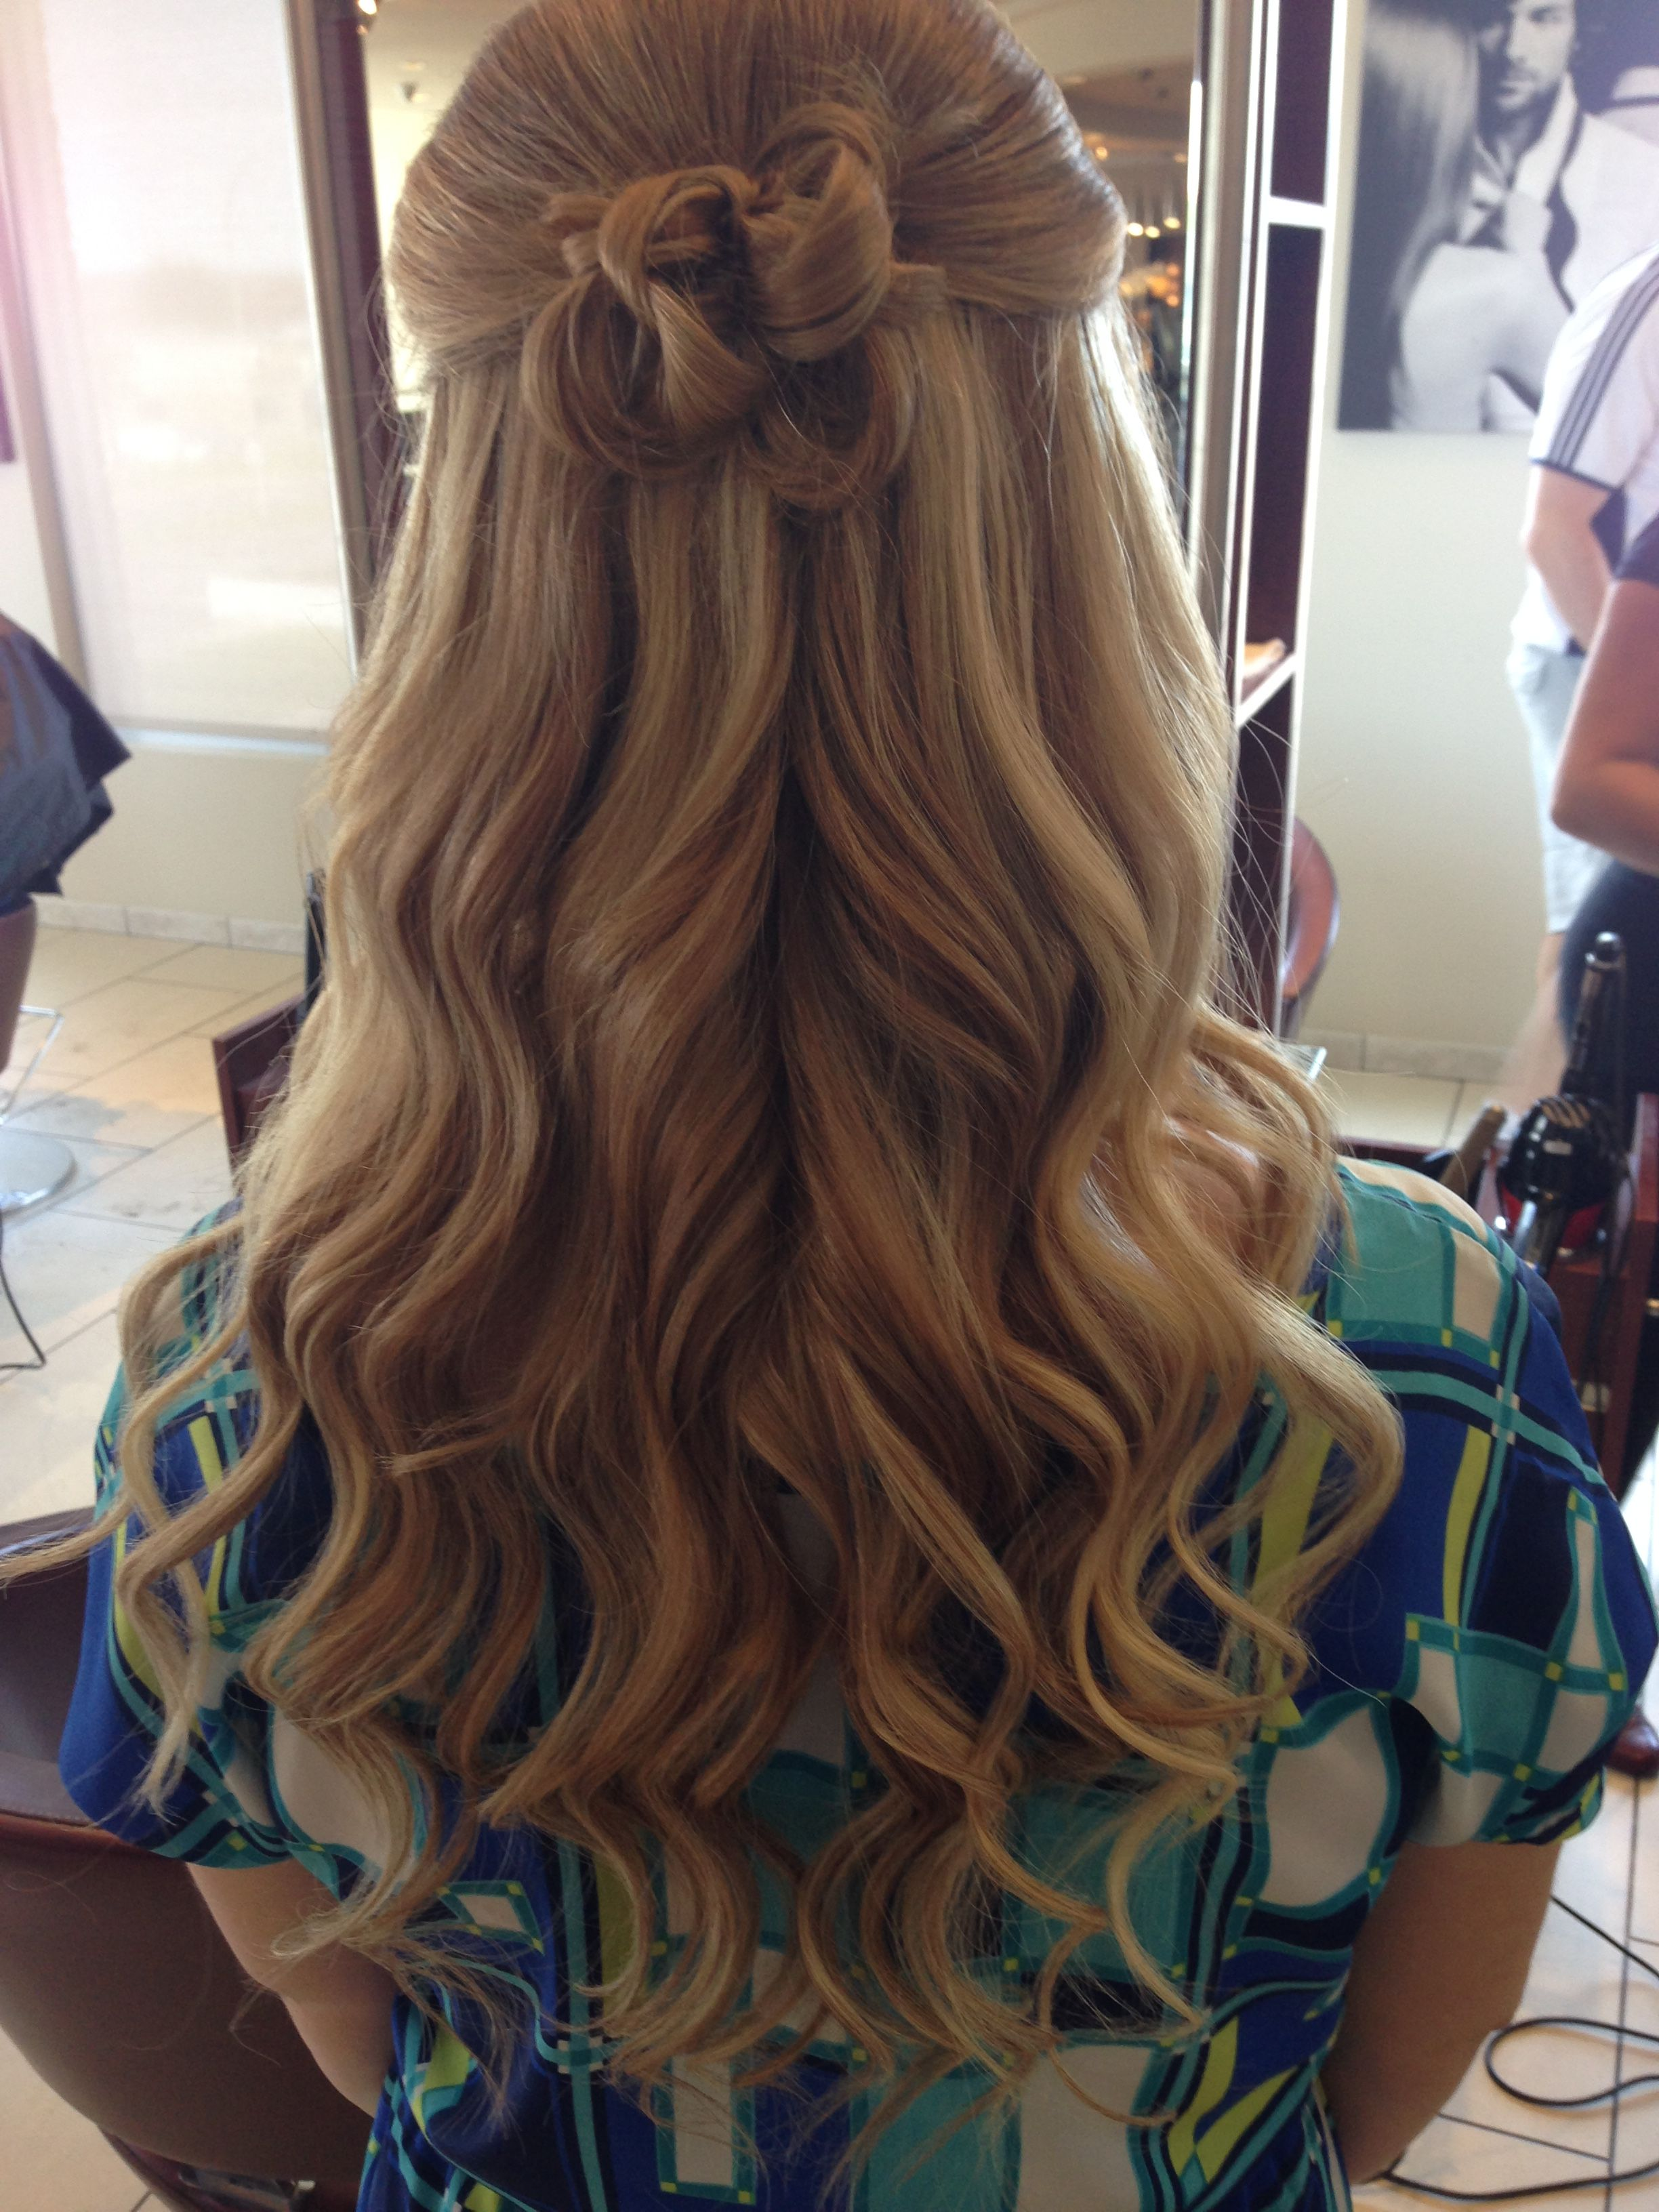 Bridal Hair Half Up Loose Curls With Messy Bun Loose Curls Down Hairstyles Bun With Curls